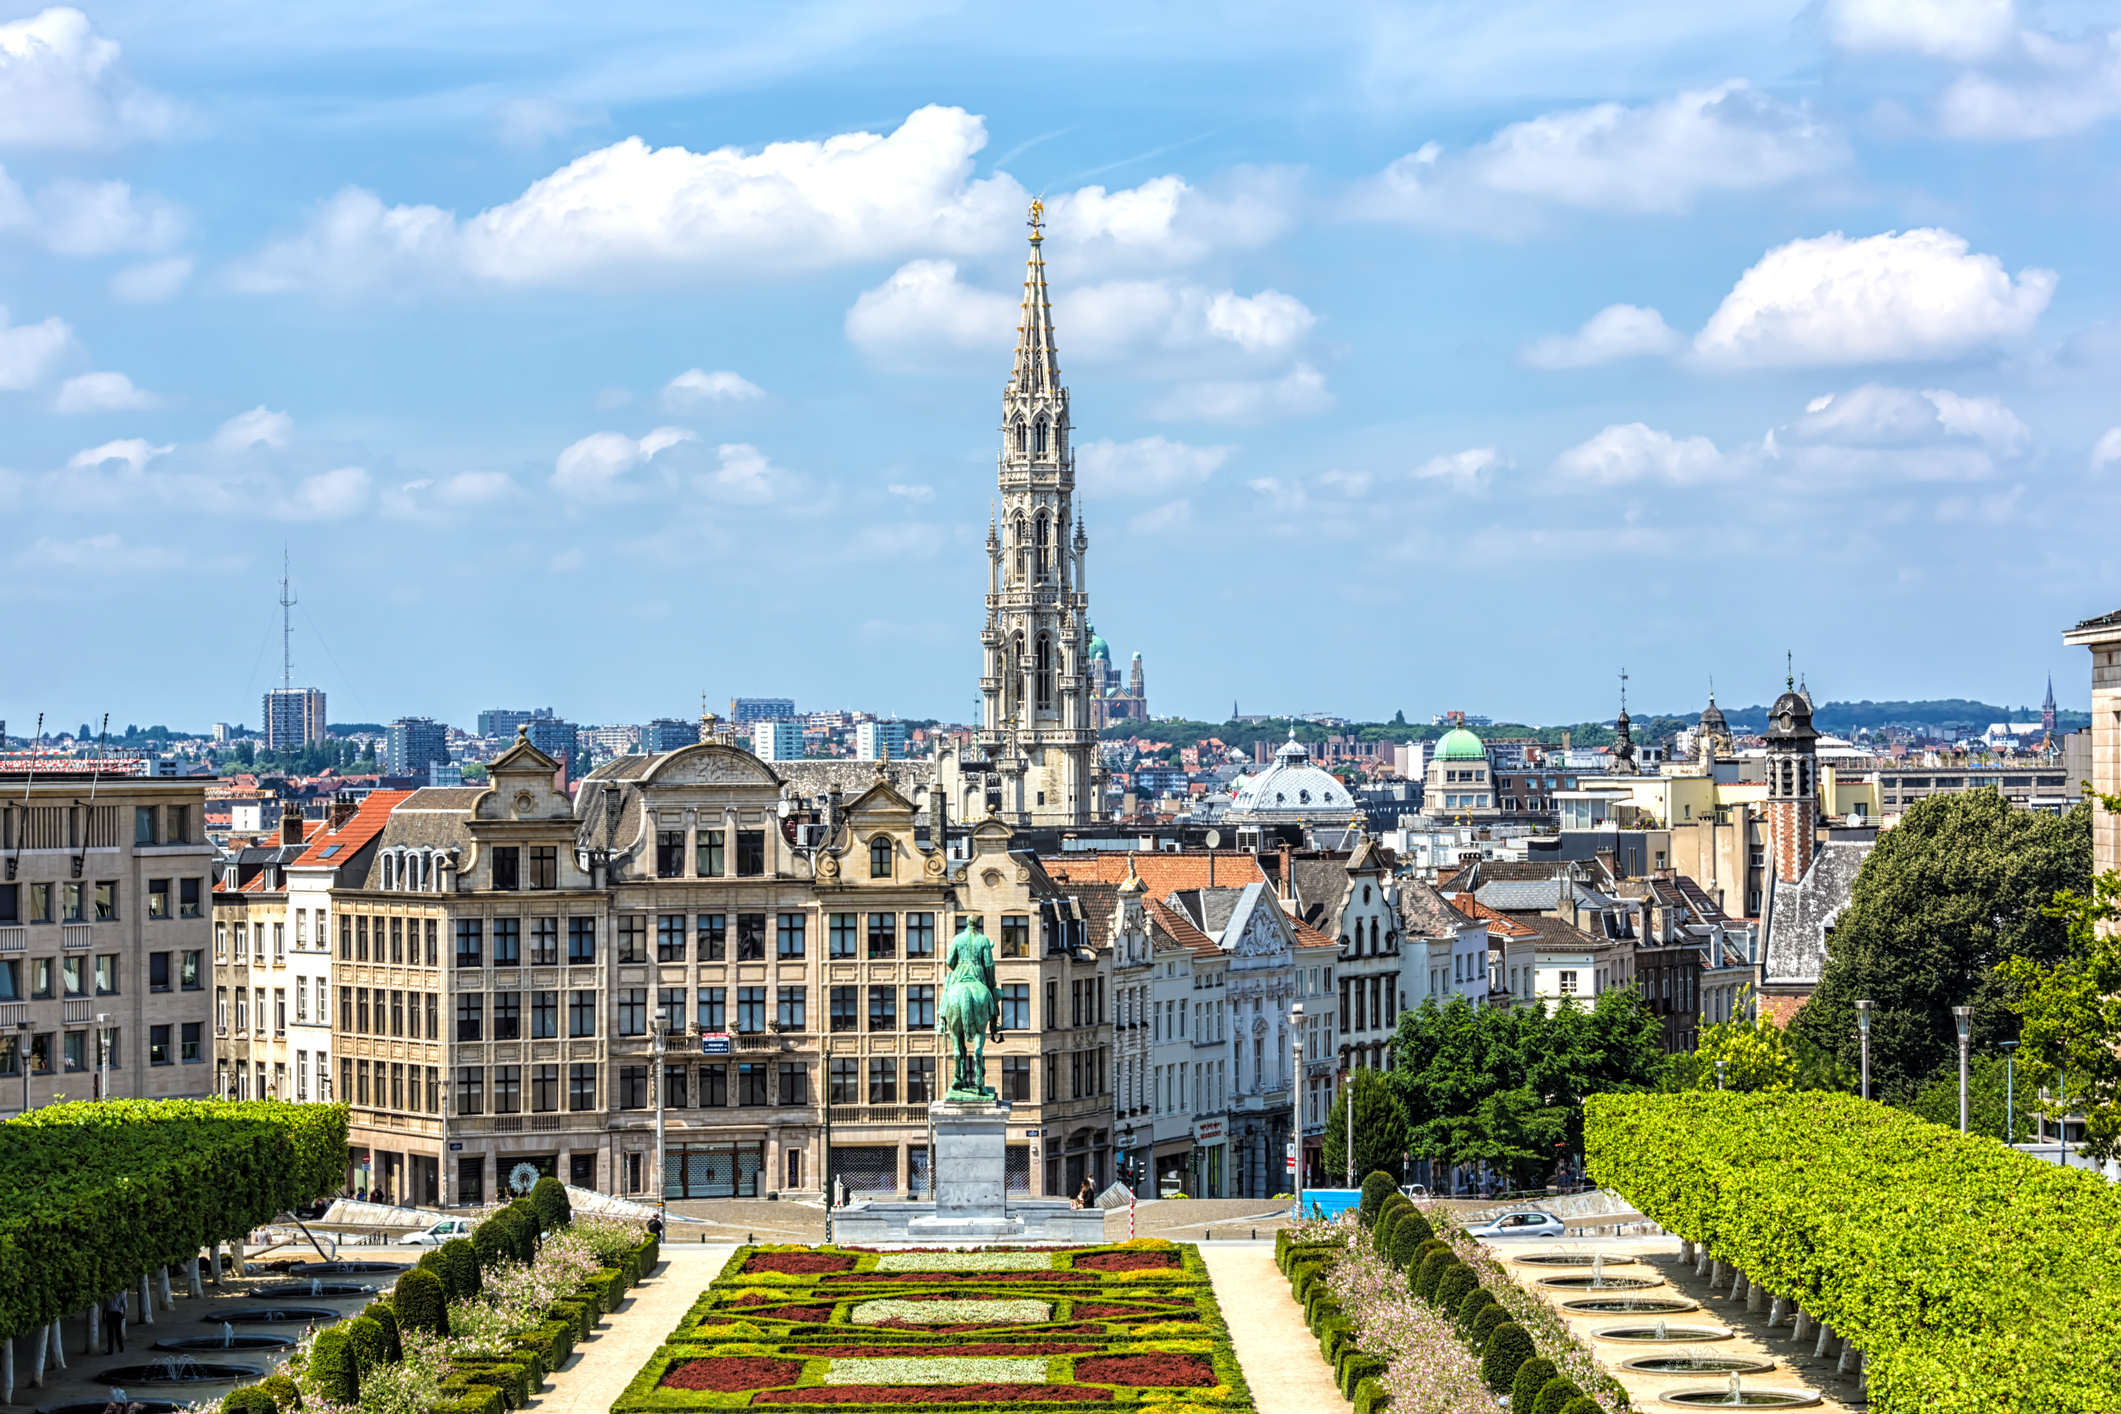 A peaceful view of Brussels